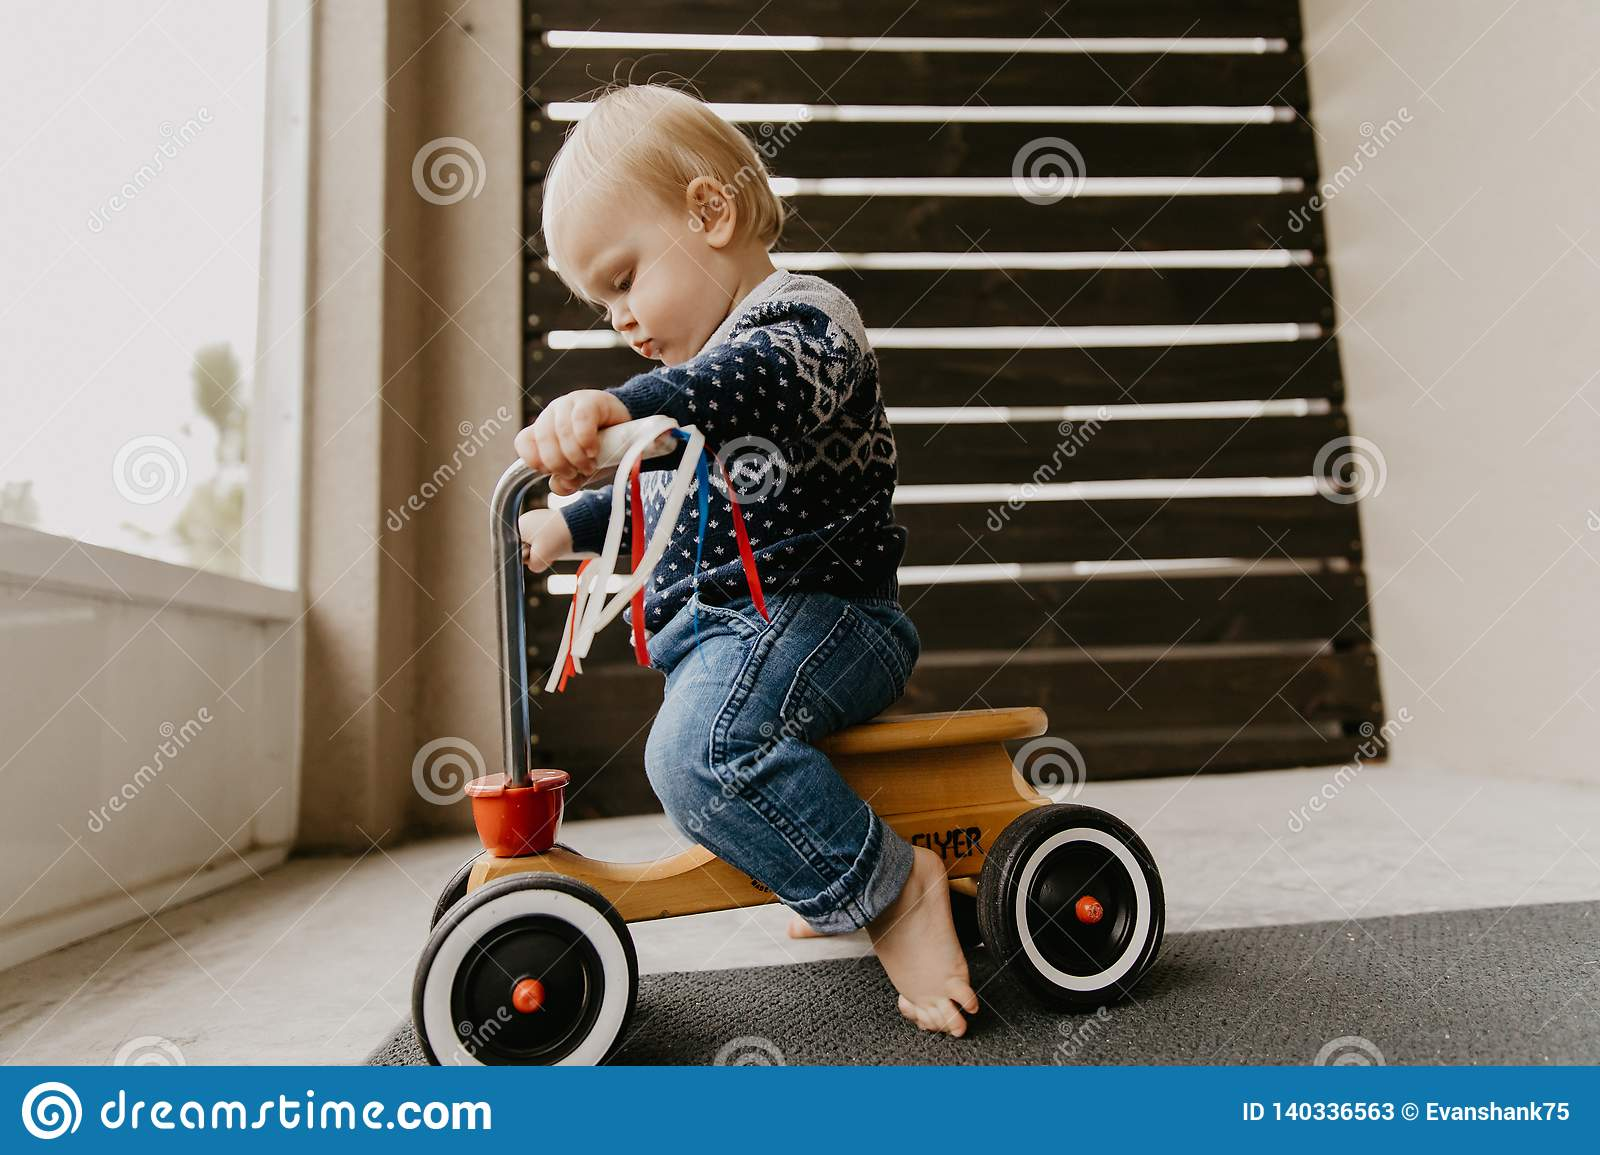 Precious Adorable Cute Little Blonde Baby Toddler Boy Kid Playing Outside on Wooden Toy Bicycle Scooter Mobile Smiling at the Came